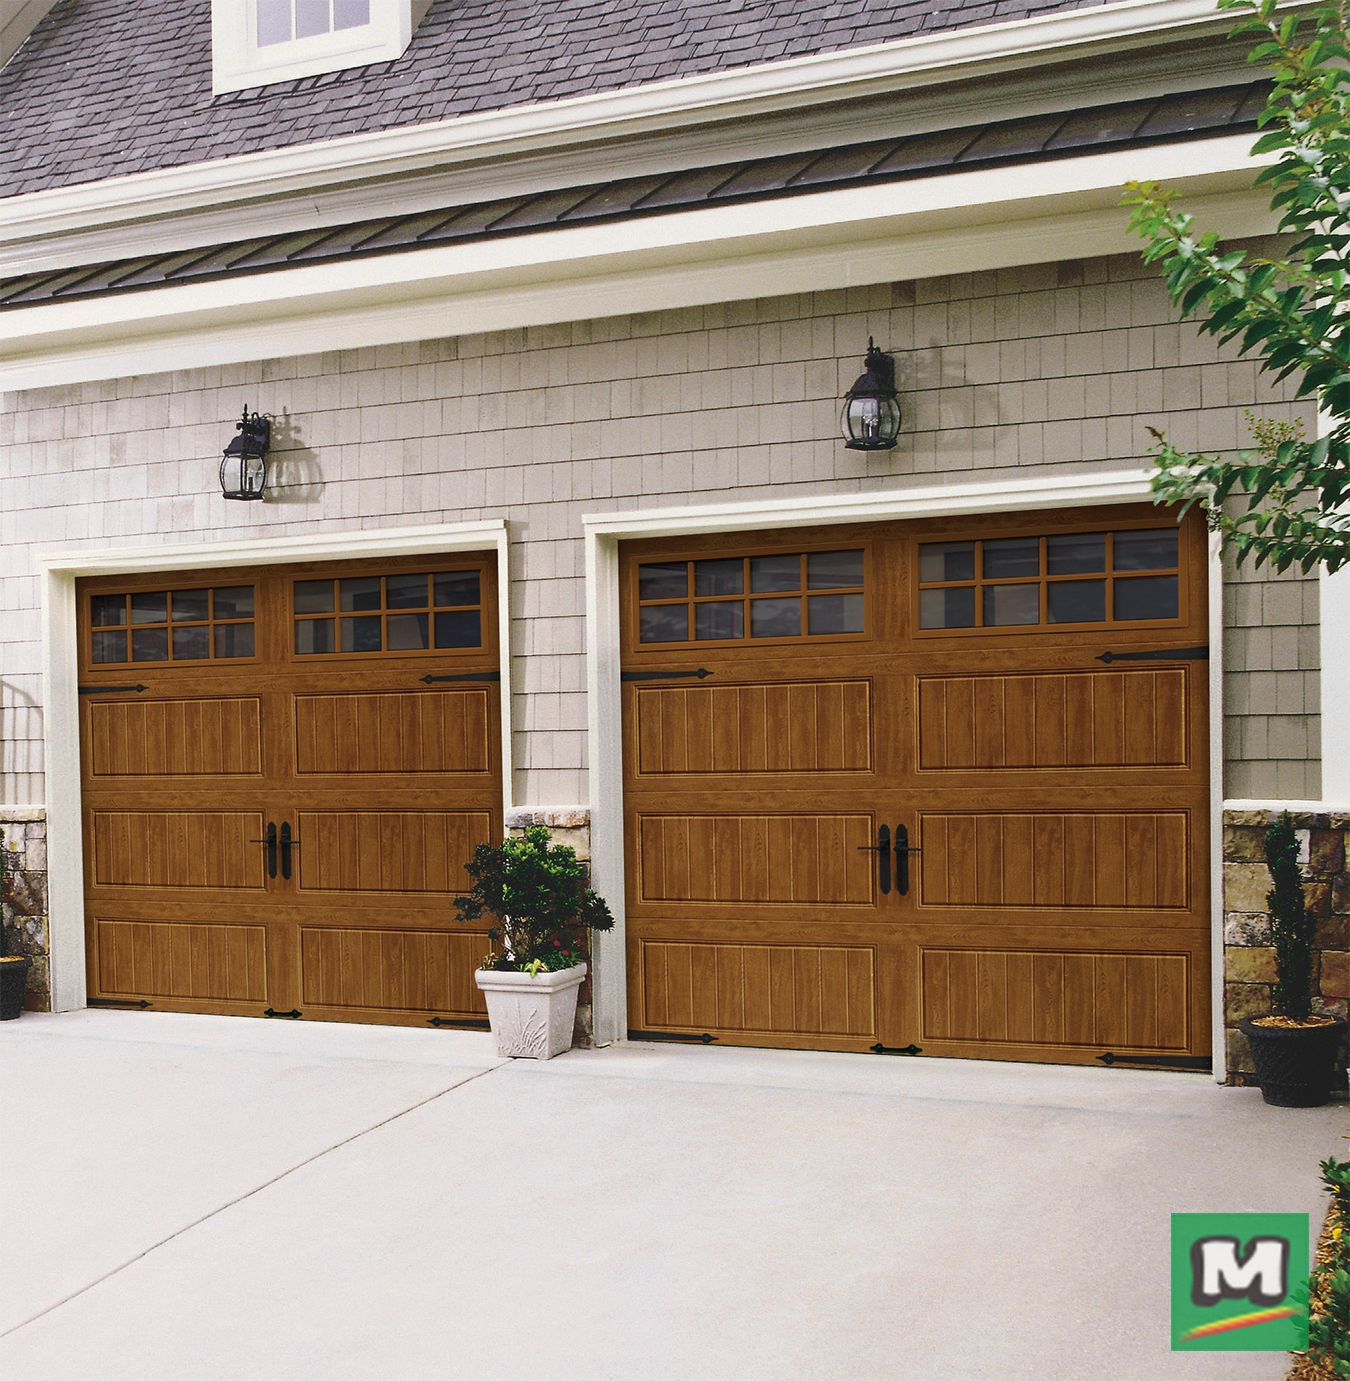 These Garage Doors From Ideal Door Offer Superior Insulation With A 3 Layer Design They Are Constructed With Garage Doors Garage Door Design Garage Exterior